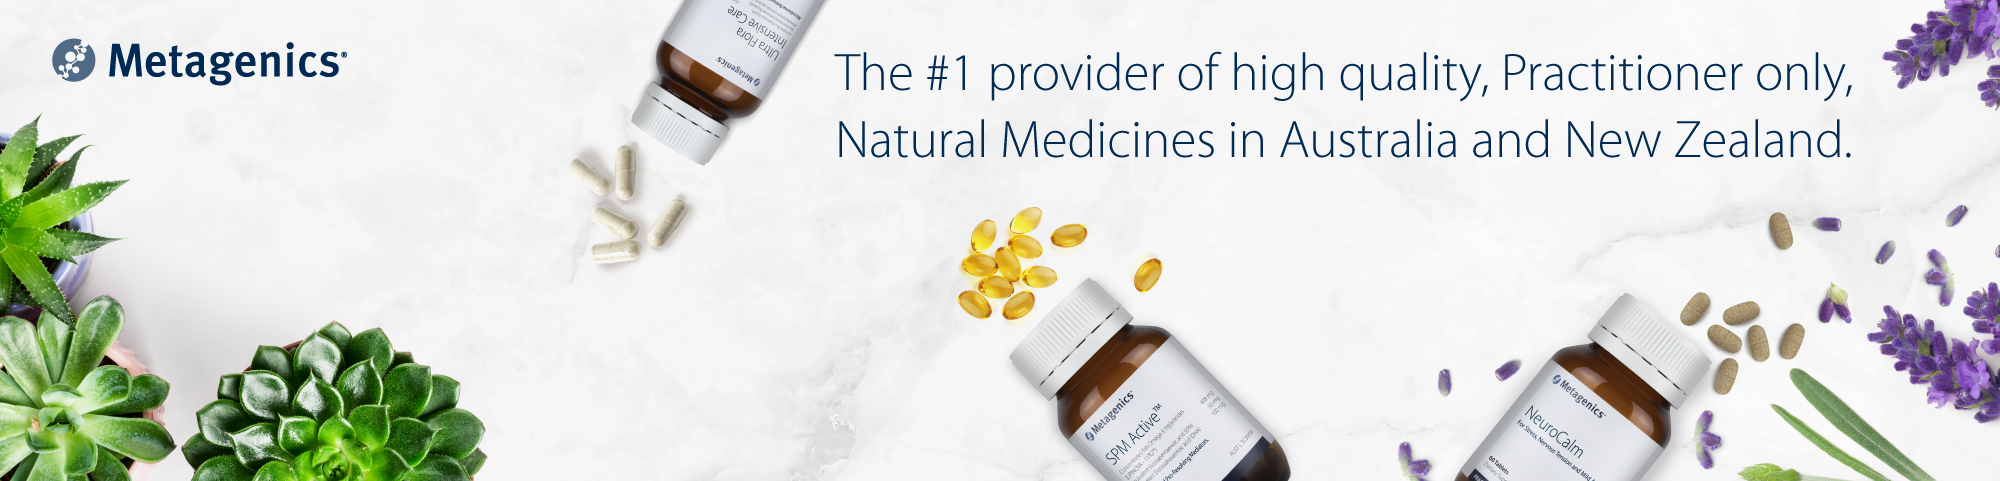 Australia and New Zealand's #1 provider of practitioner-only natural medicine